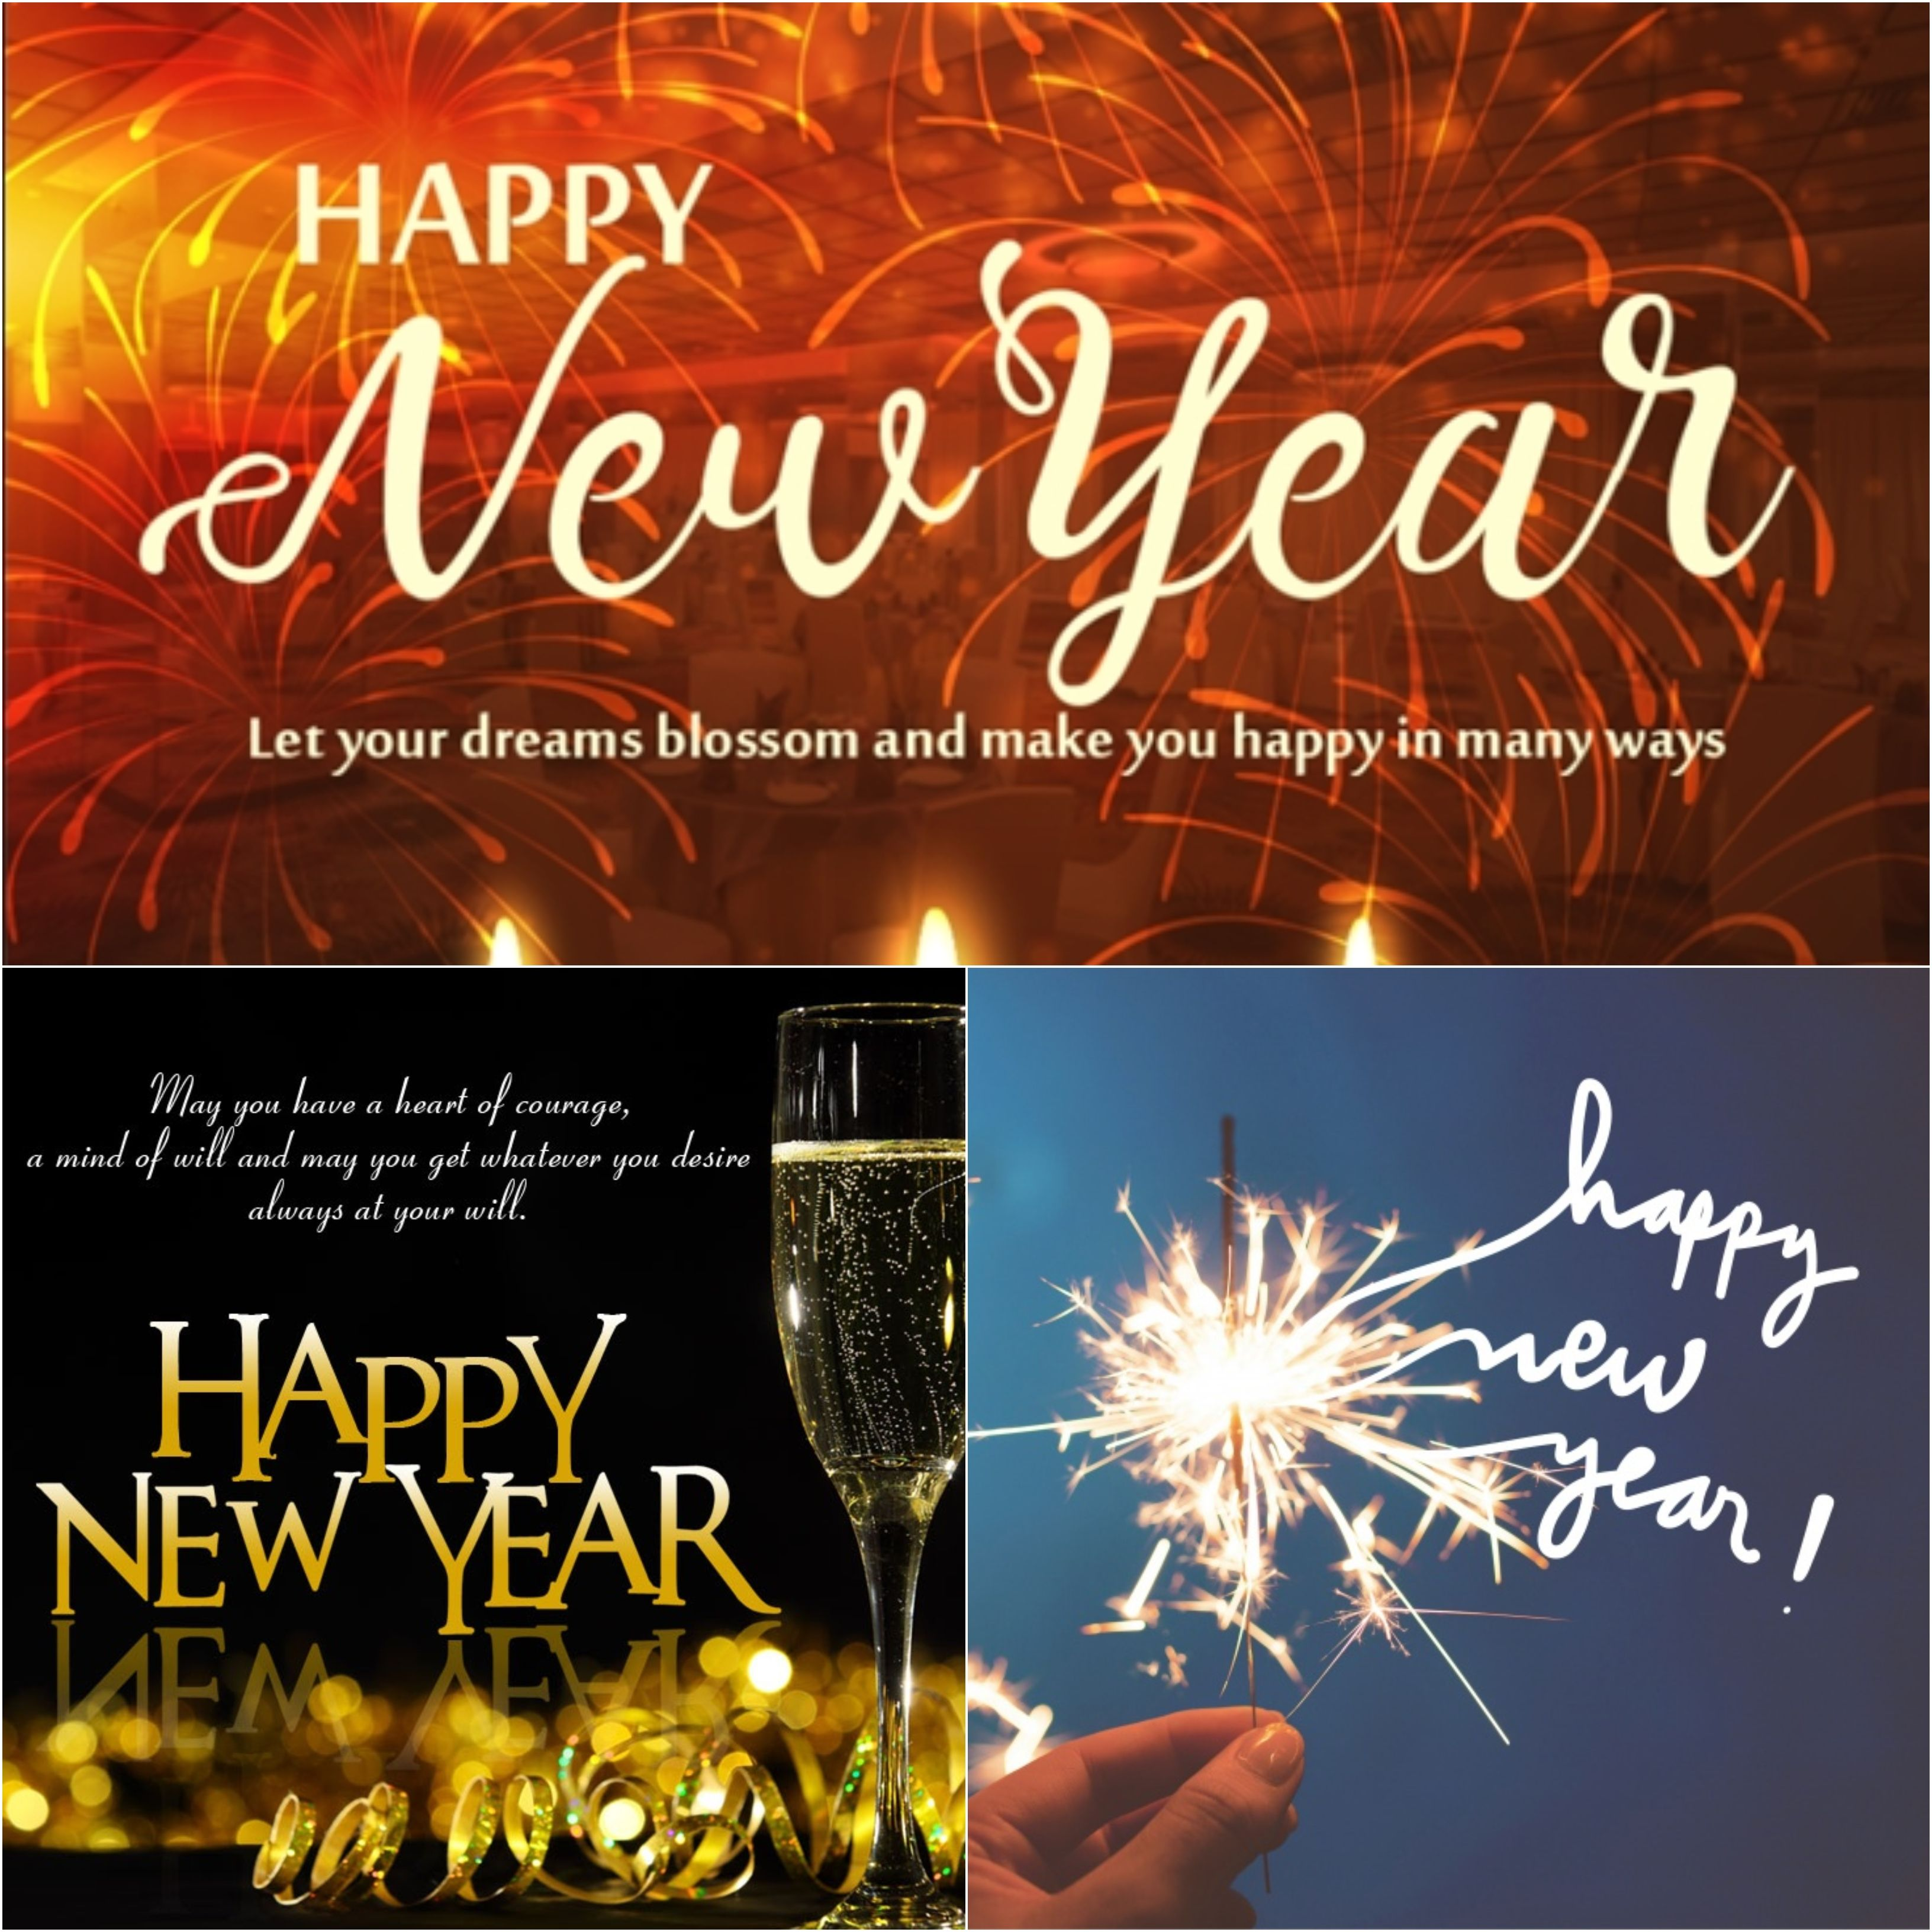 Cheers To A New Year A New Start And Way To Go Wish You A